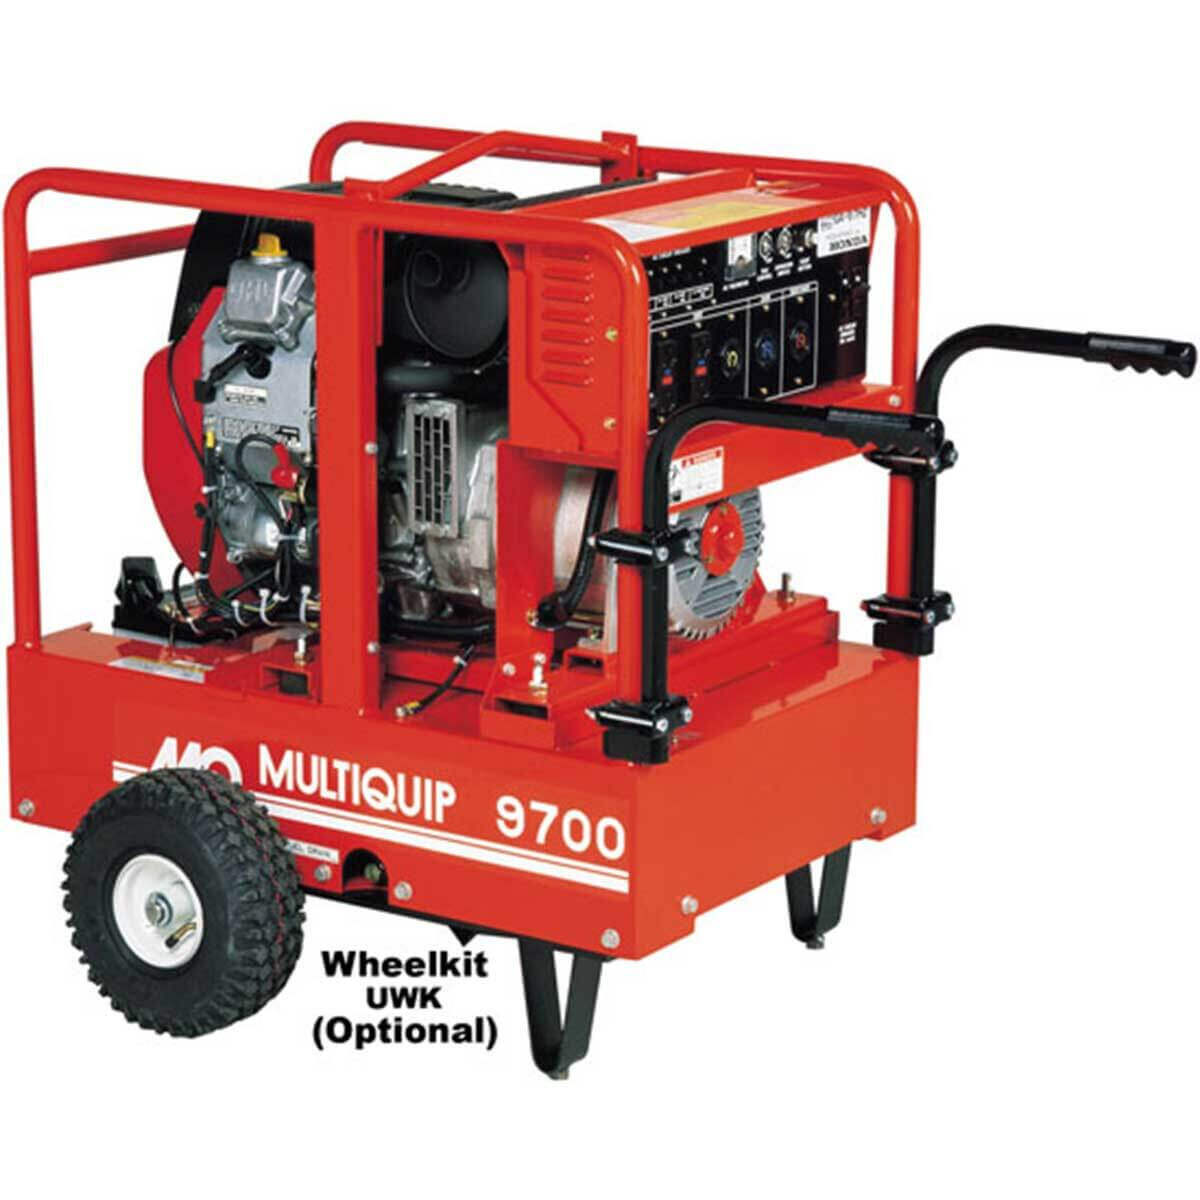 Multiquip GA97HE Generator with Optional Wheel Kit